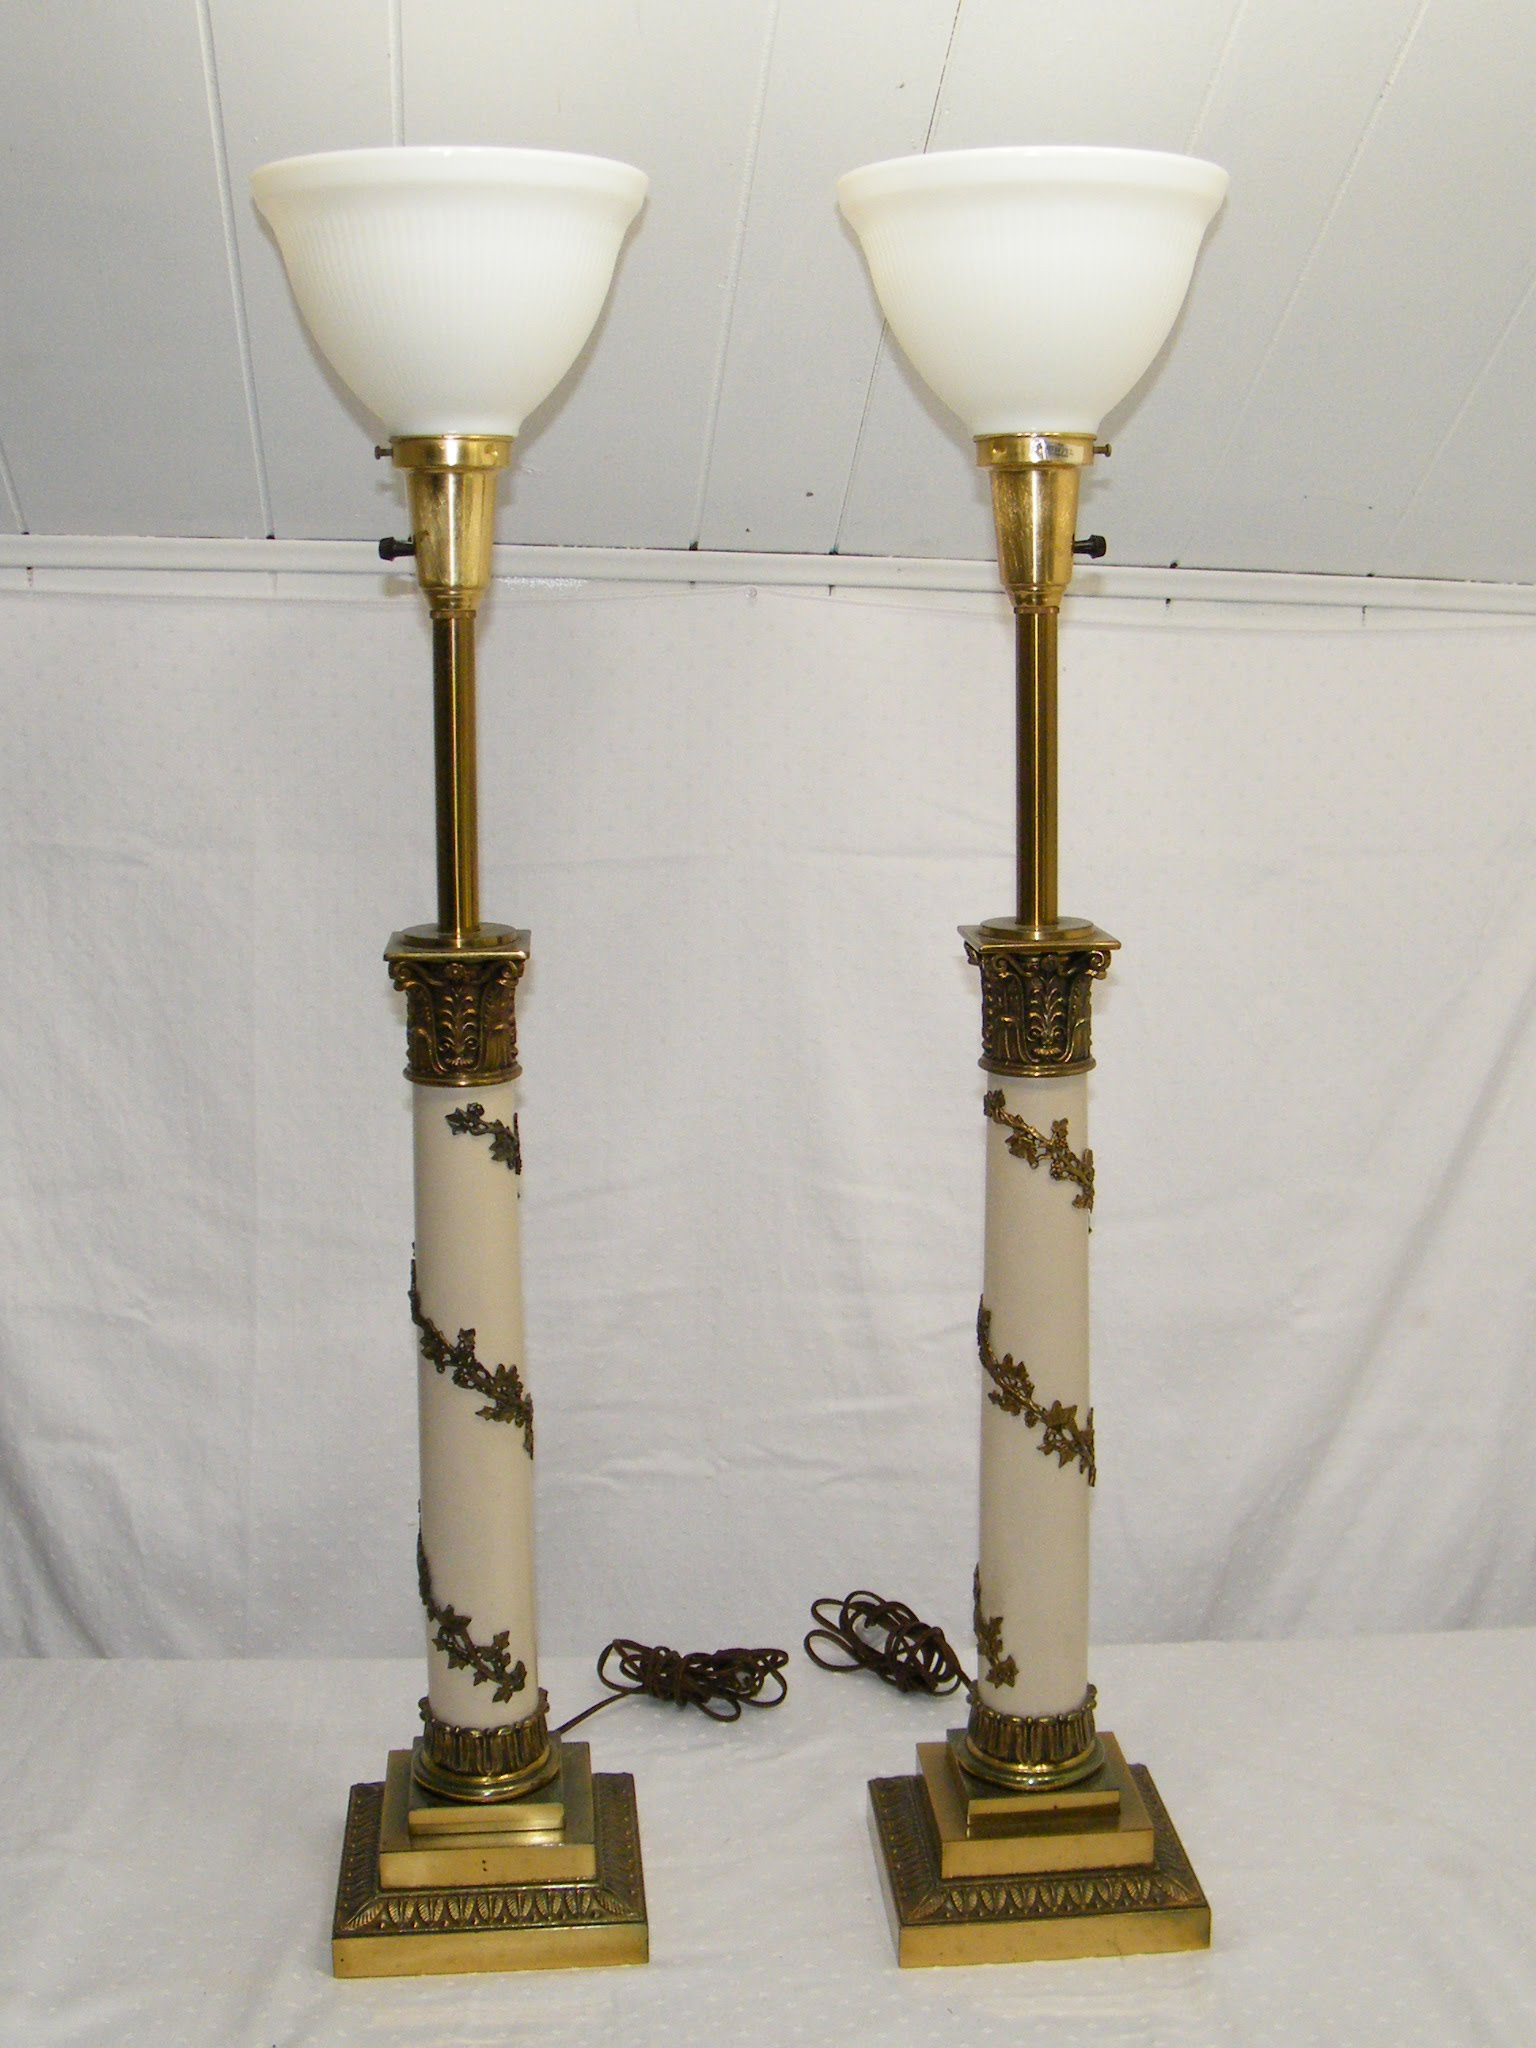 Stiffel Lamps Vintage 10 Representatives Of A Wonderful Neoclassical Art Warisan Lighting